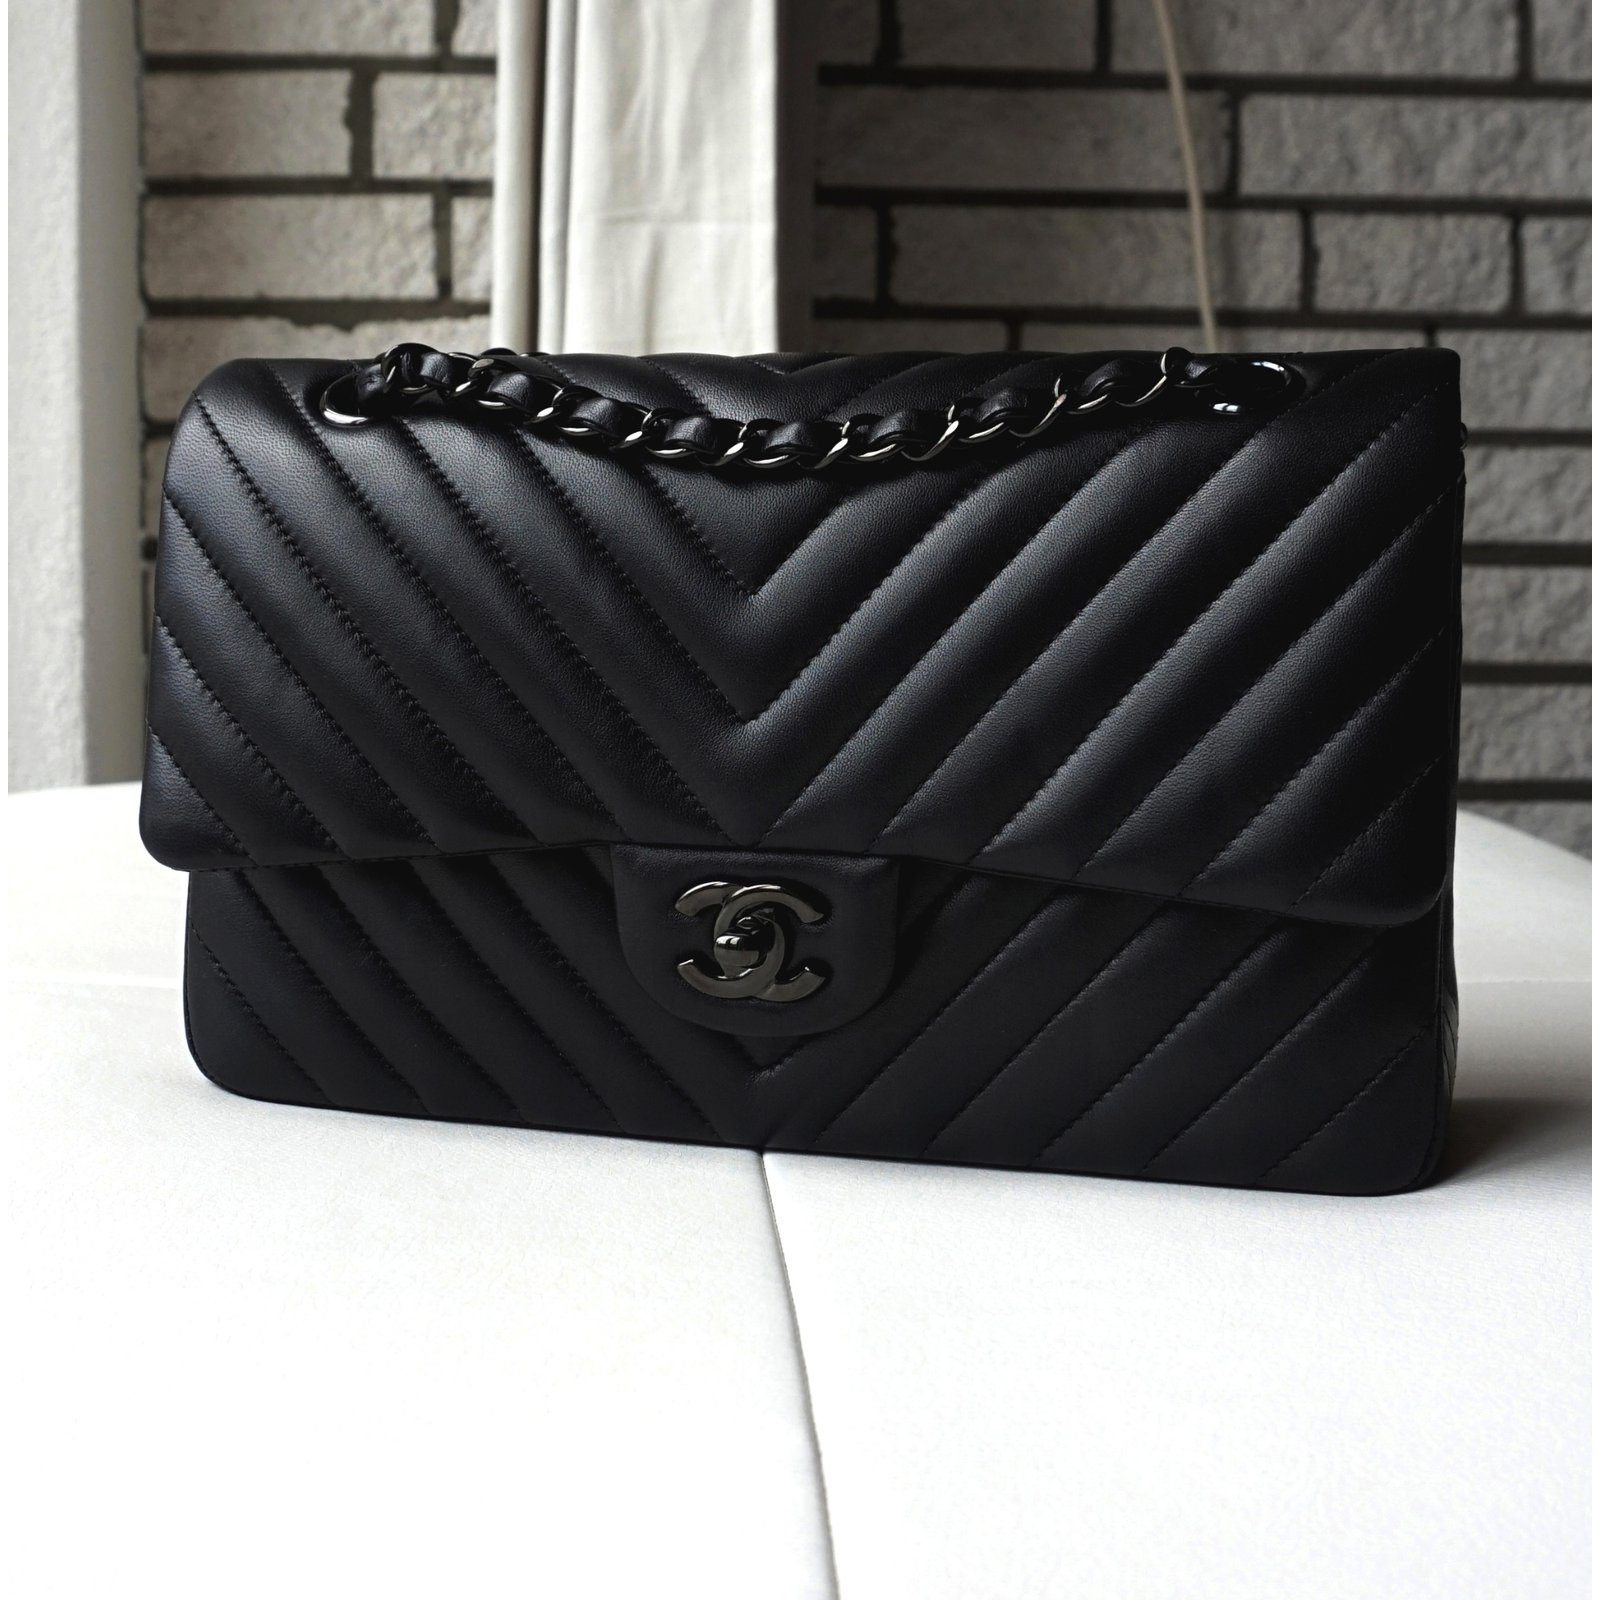 a6bdeed9944f65 Chanel Timeless So Black Handbags Lambskin Black ref.20645 - Joli Closet